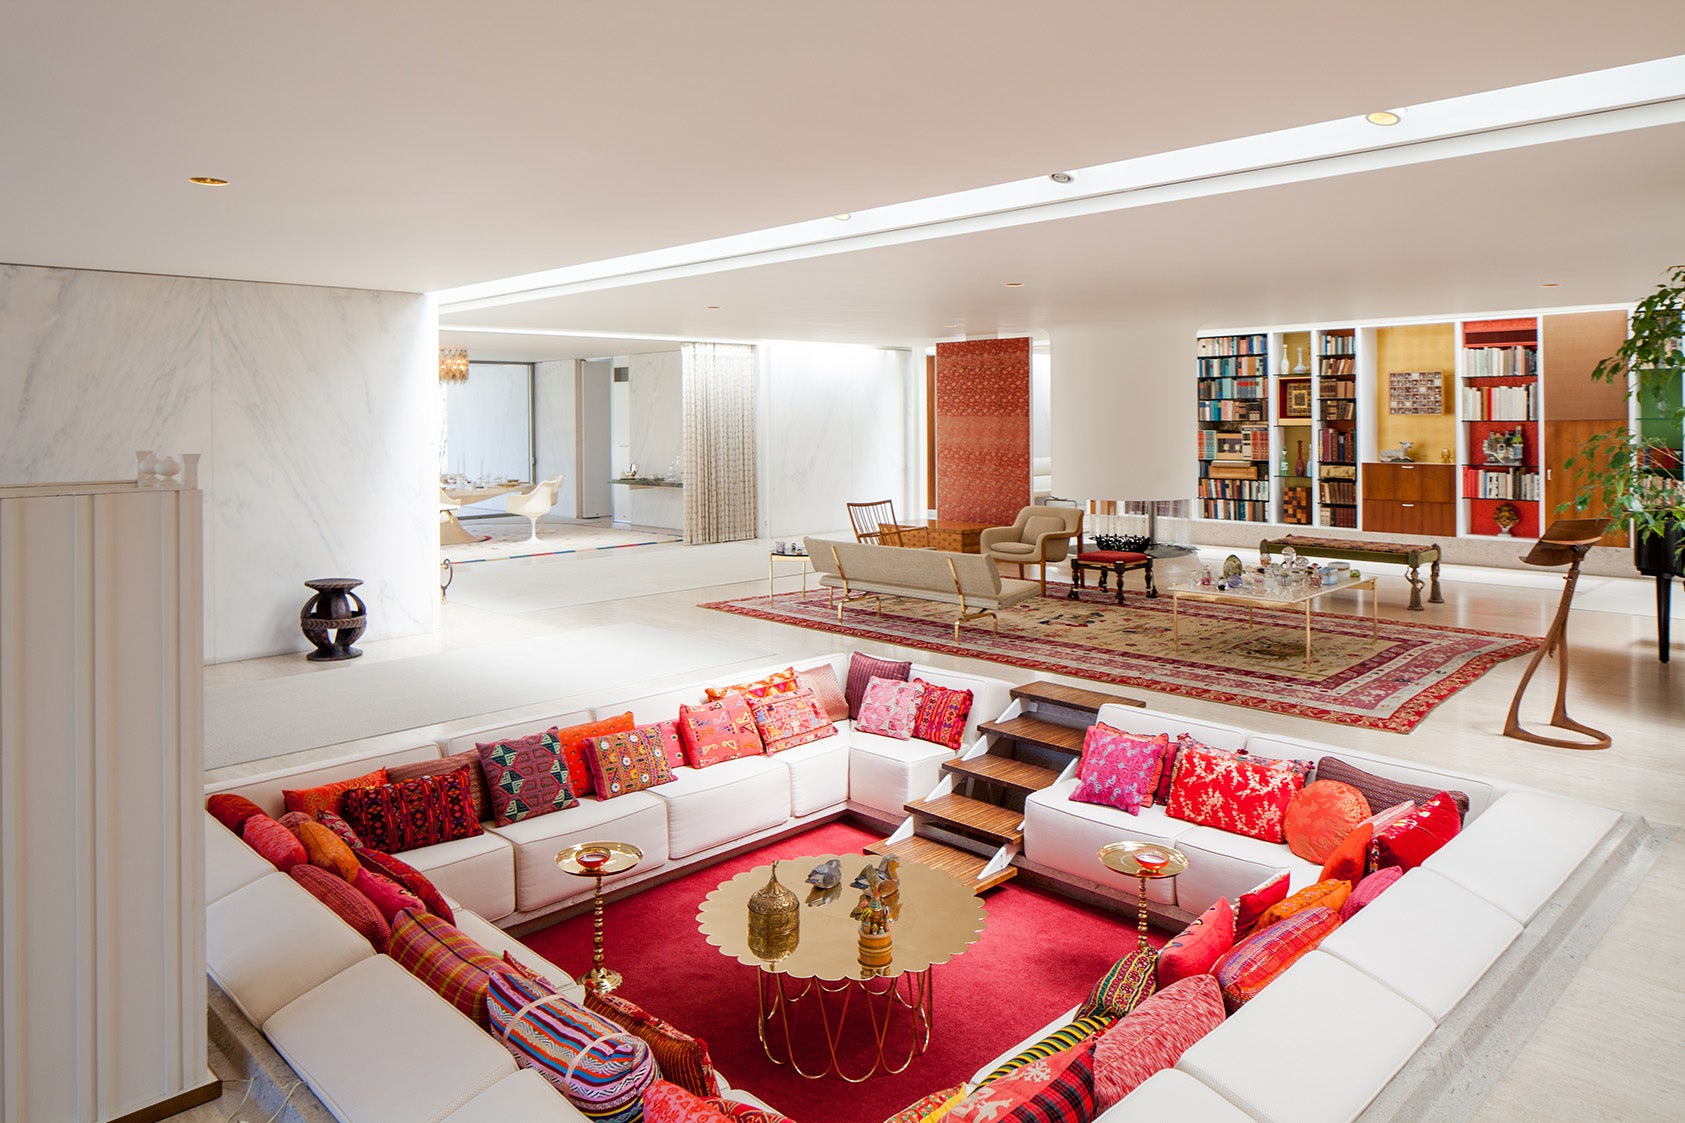 How to Pull Off a Sunken Living Room in the 21st Century